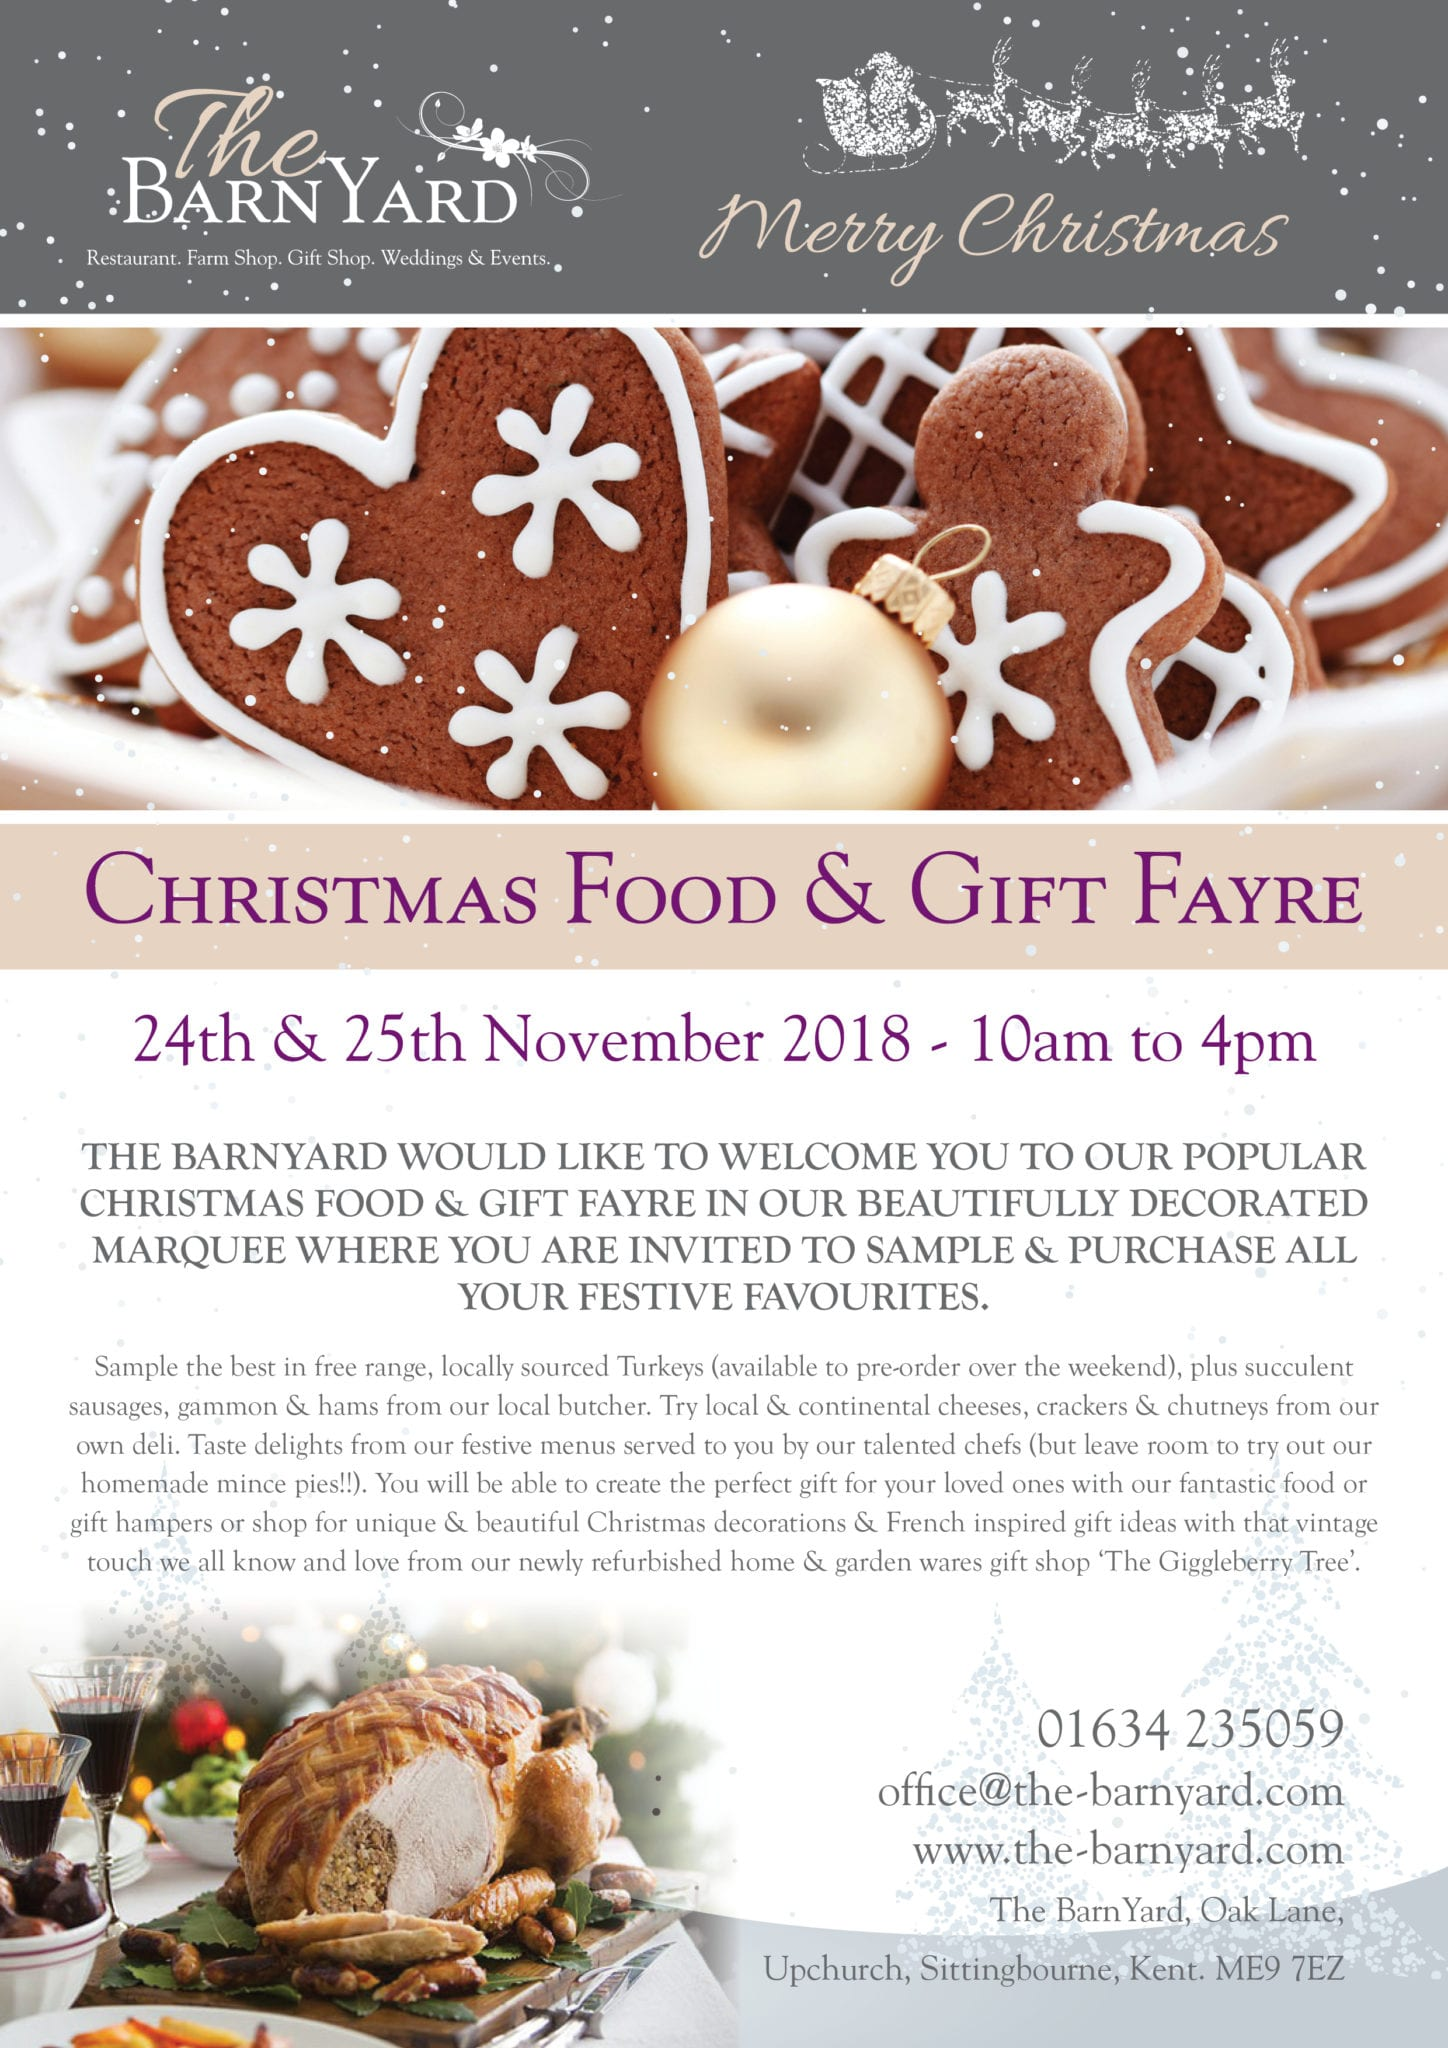 Christmas Food & Fayre Flyer